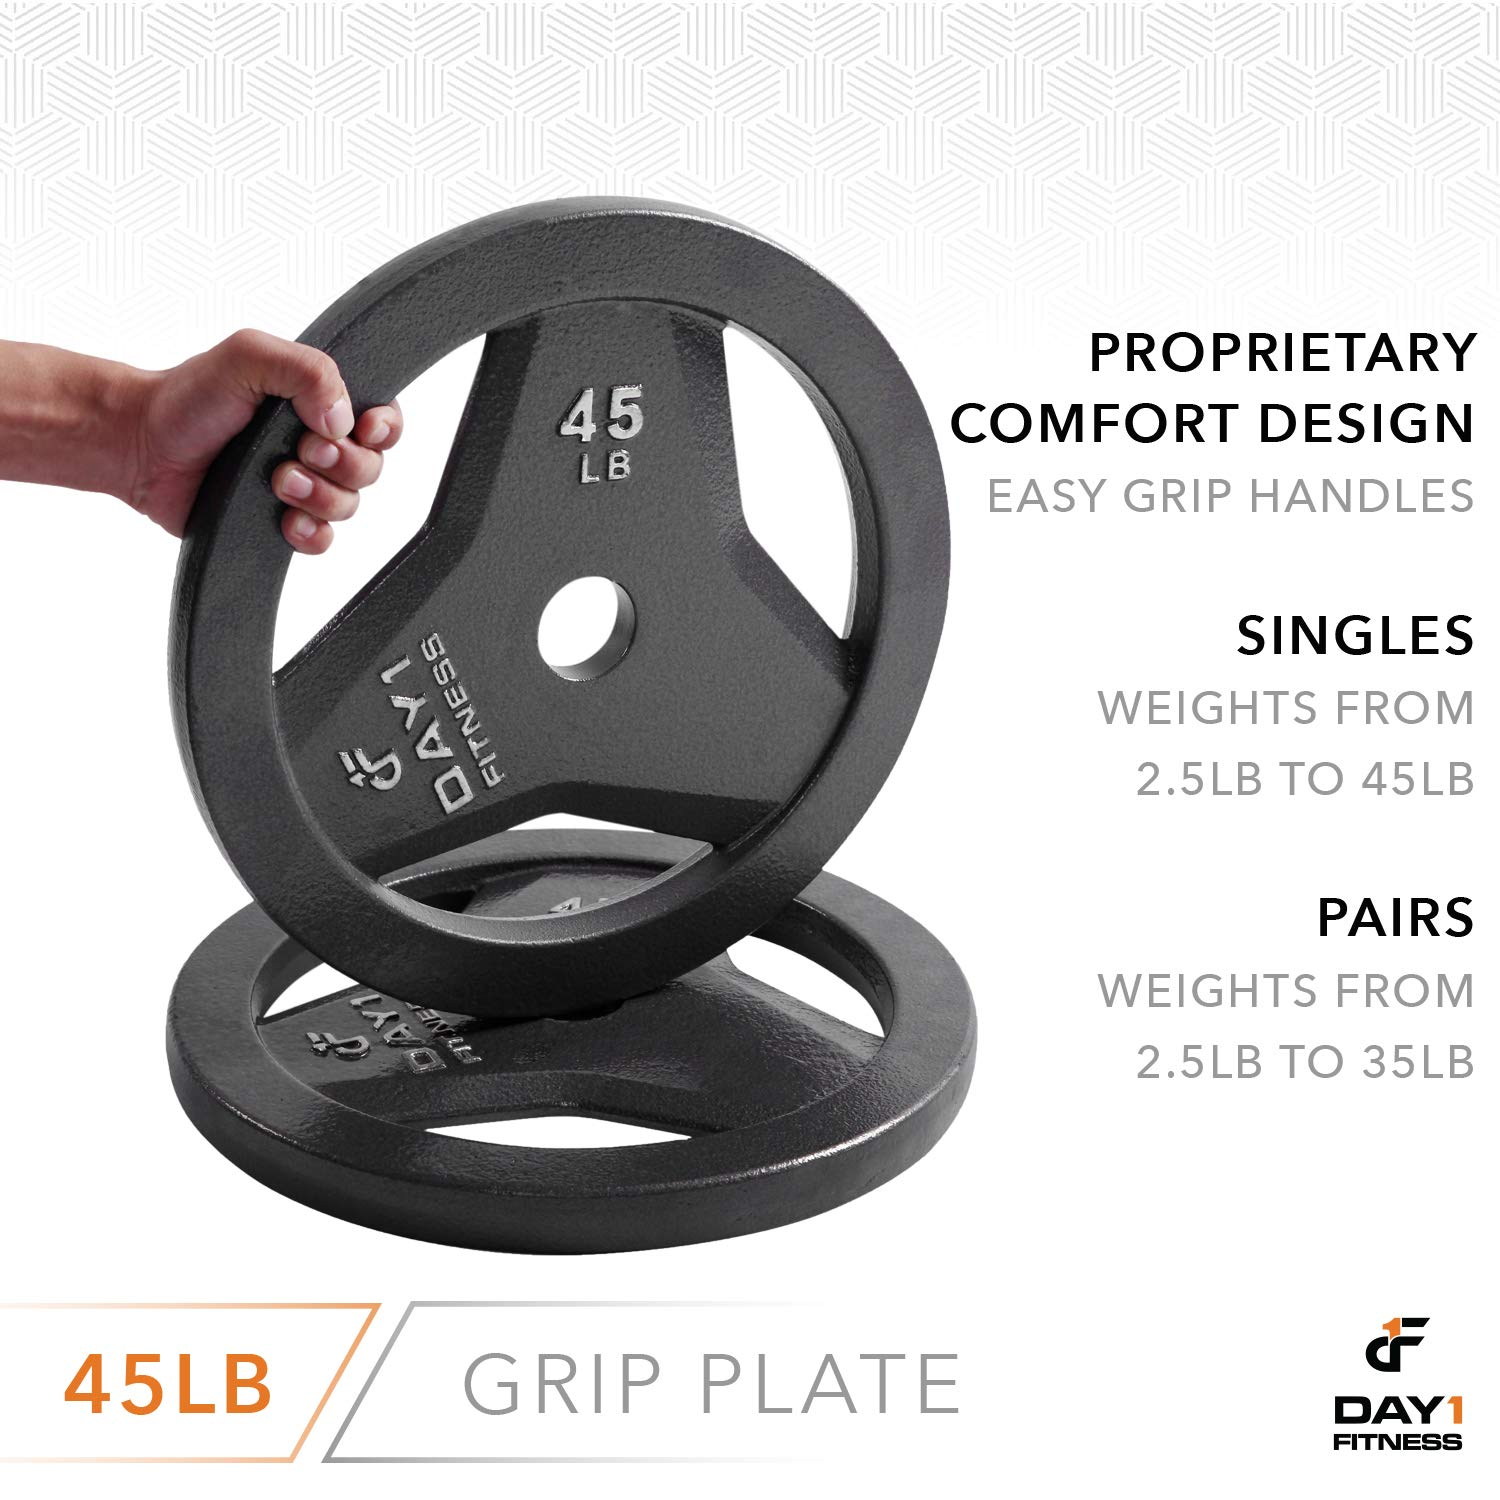 "Day 1 Fitness Cast Iron Olympic 2-Inch Grip Plate for Barbell, 45 Pound Single Plate Iron Grip Plates for Weightlifting, Crossfit - 2"" Weight Plate for Bodybuilding by Day 1 Fitness (Image #5)"